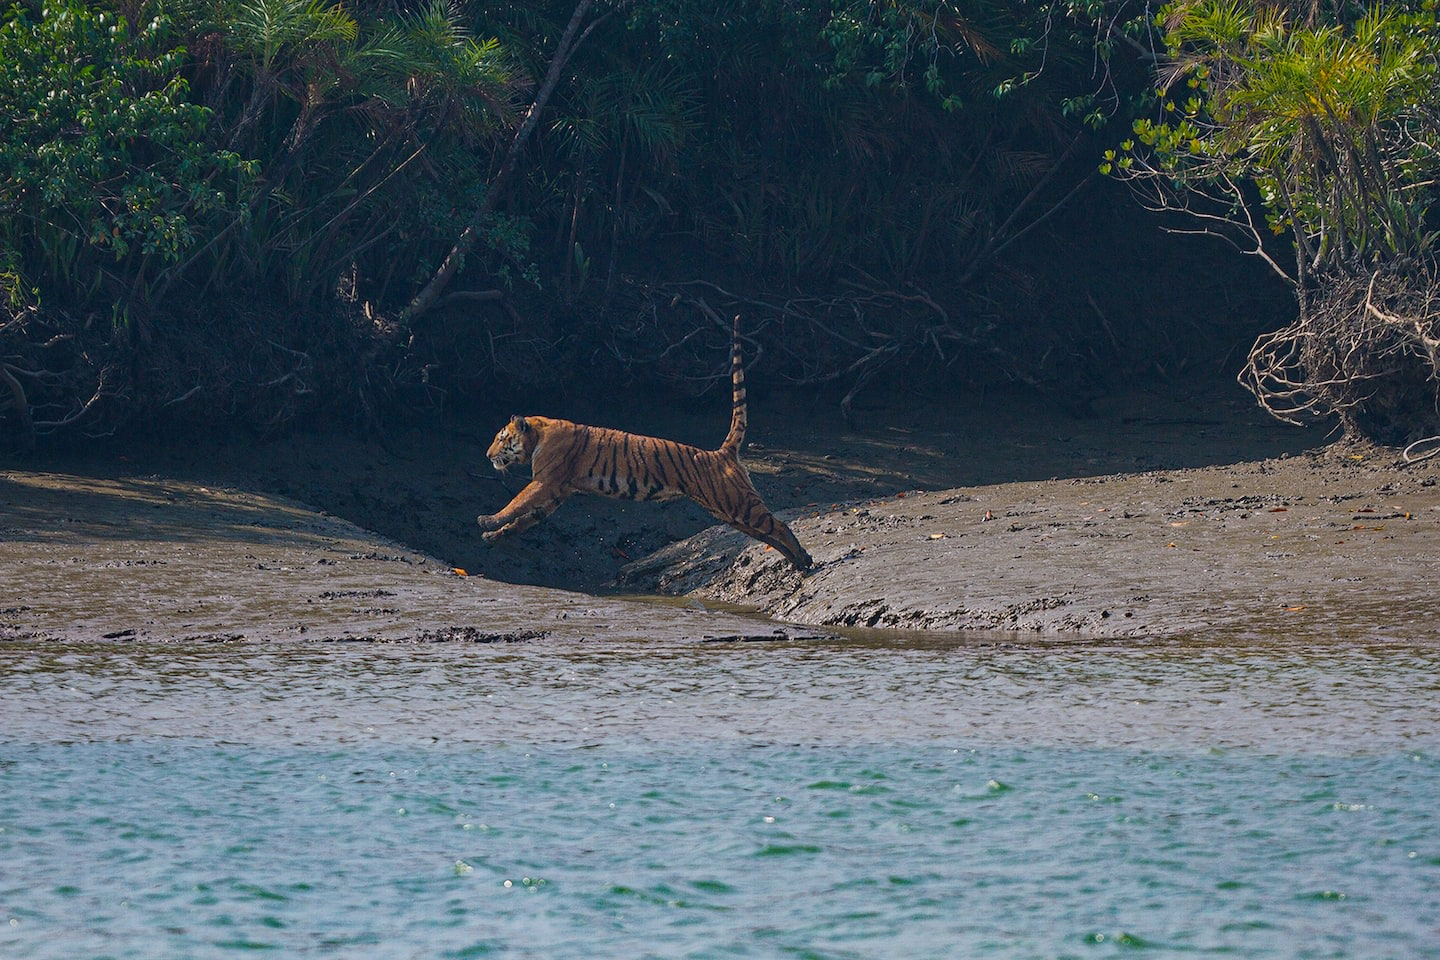 The Bengal tiger's hindlimbs are longer than its forelimbs. It propels itself on its long hindlimbs to leap over the tiny creeks that separate islands in the Sundarbans.